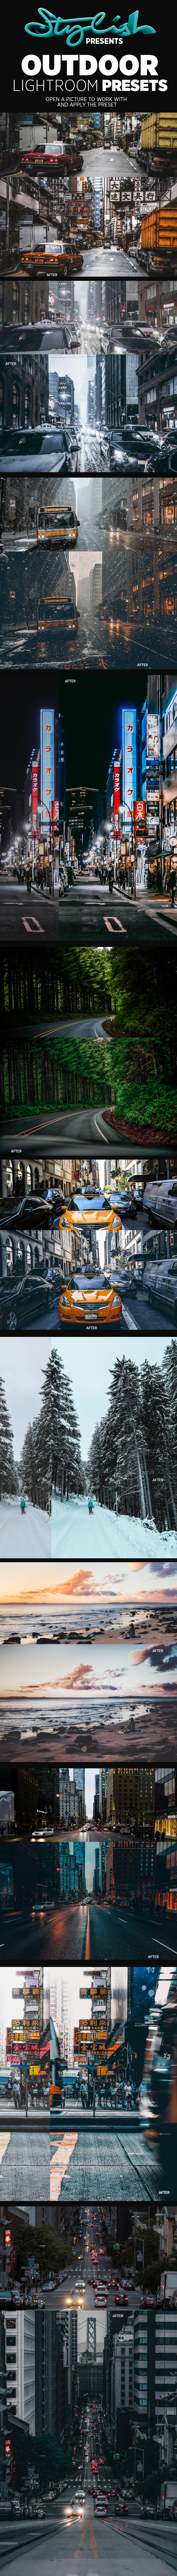 GraphicRiver Outdoor Cinematic Lightroom Presets 21130117